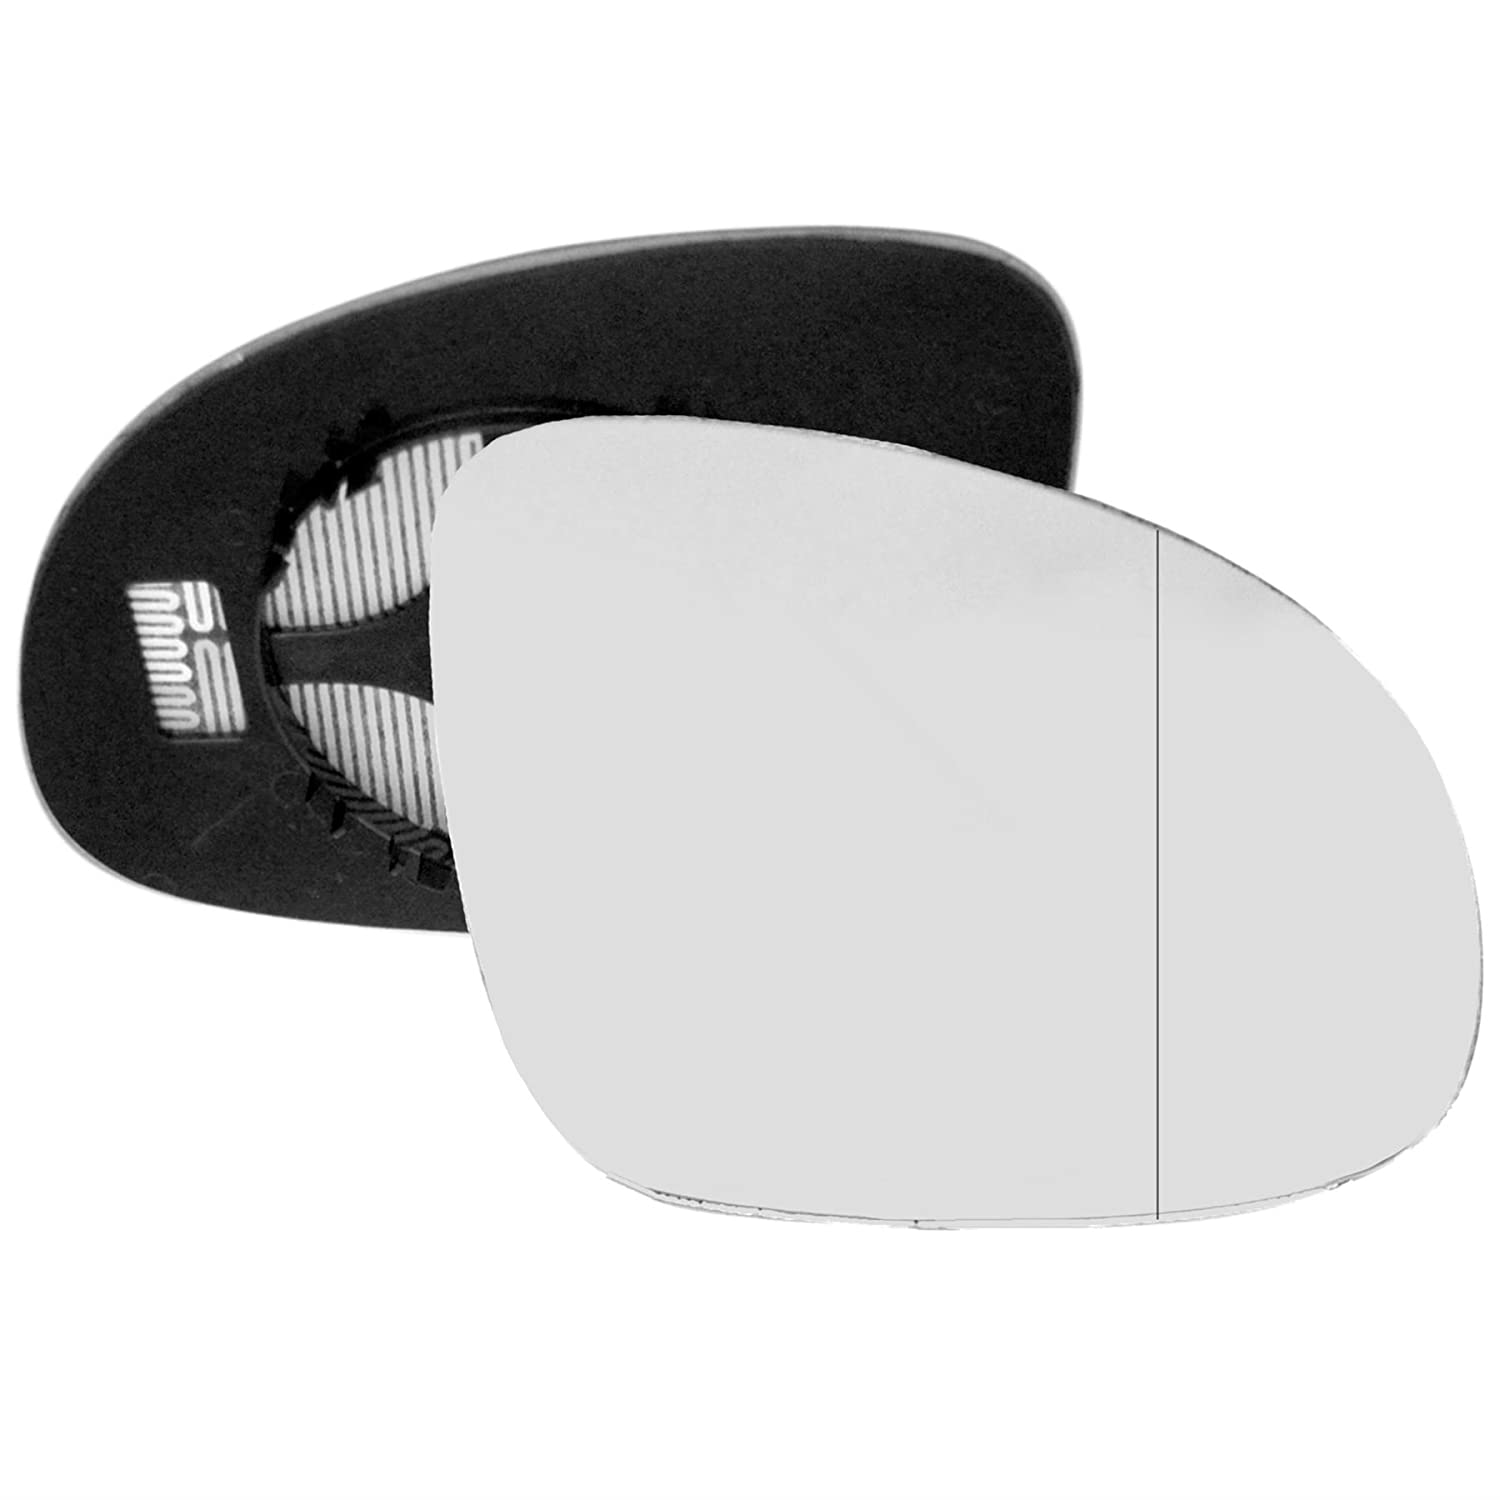 Driver right hand side wing door mirror convex glass heated with backing plate Sylgab